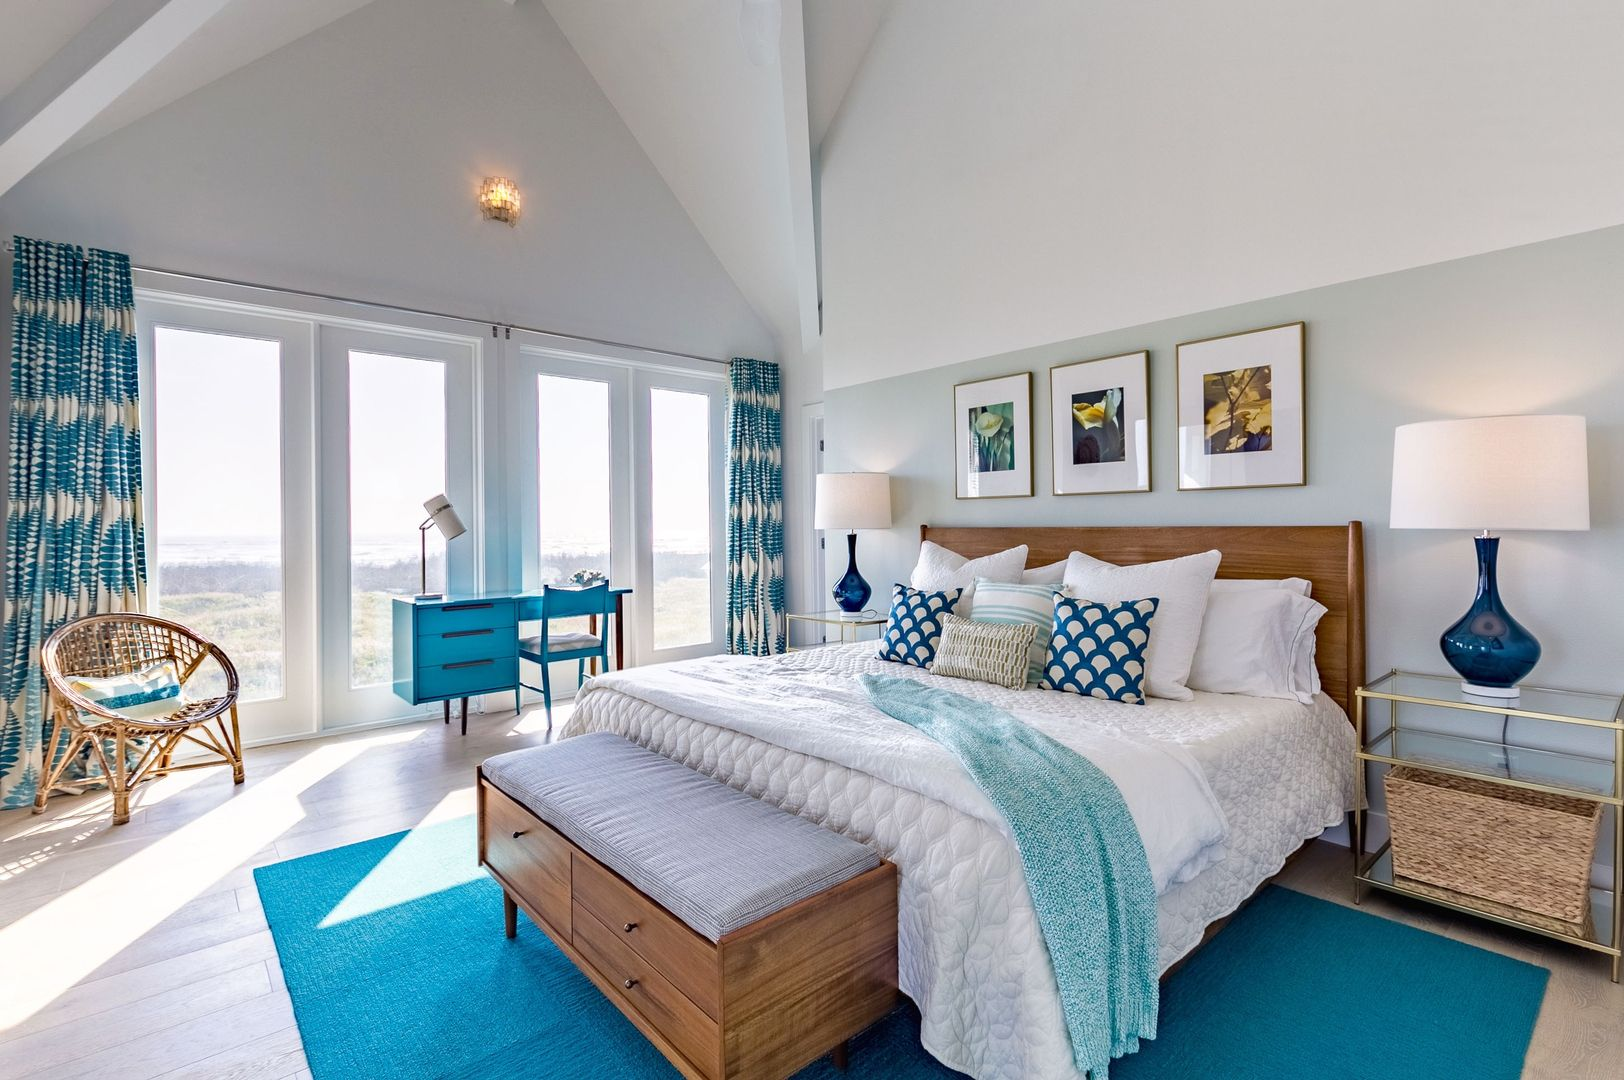 Marvelous Teal, Turquoise And Aloe Beach House Bedroom. Modern Beach Design At  Aquamarine, Port Aransas Texas